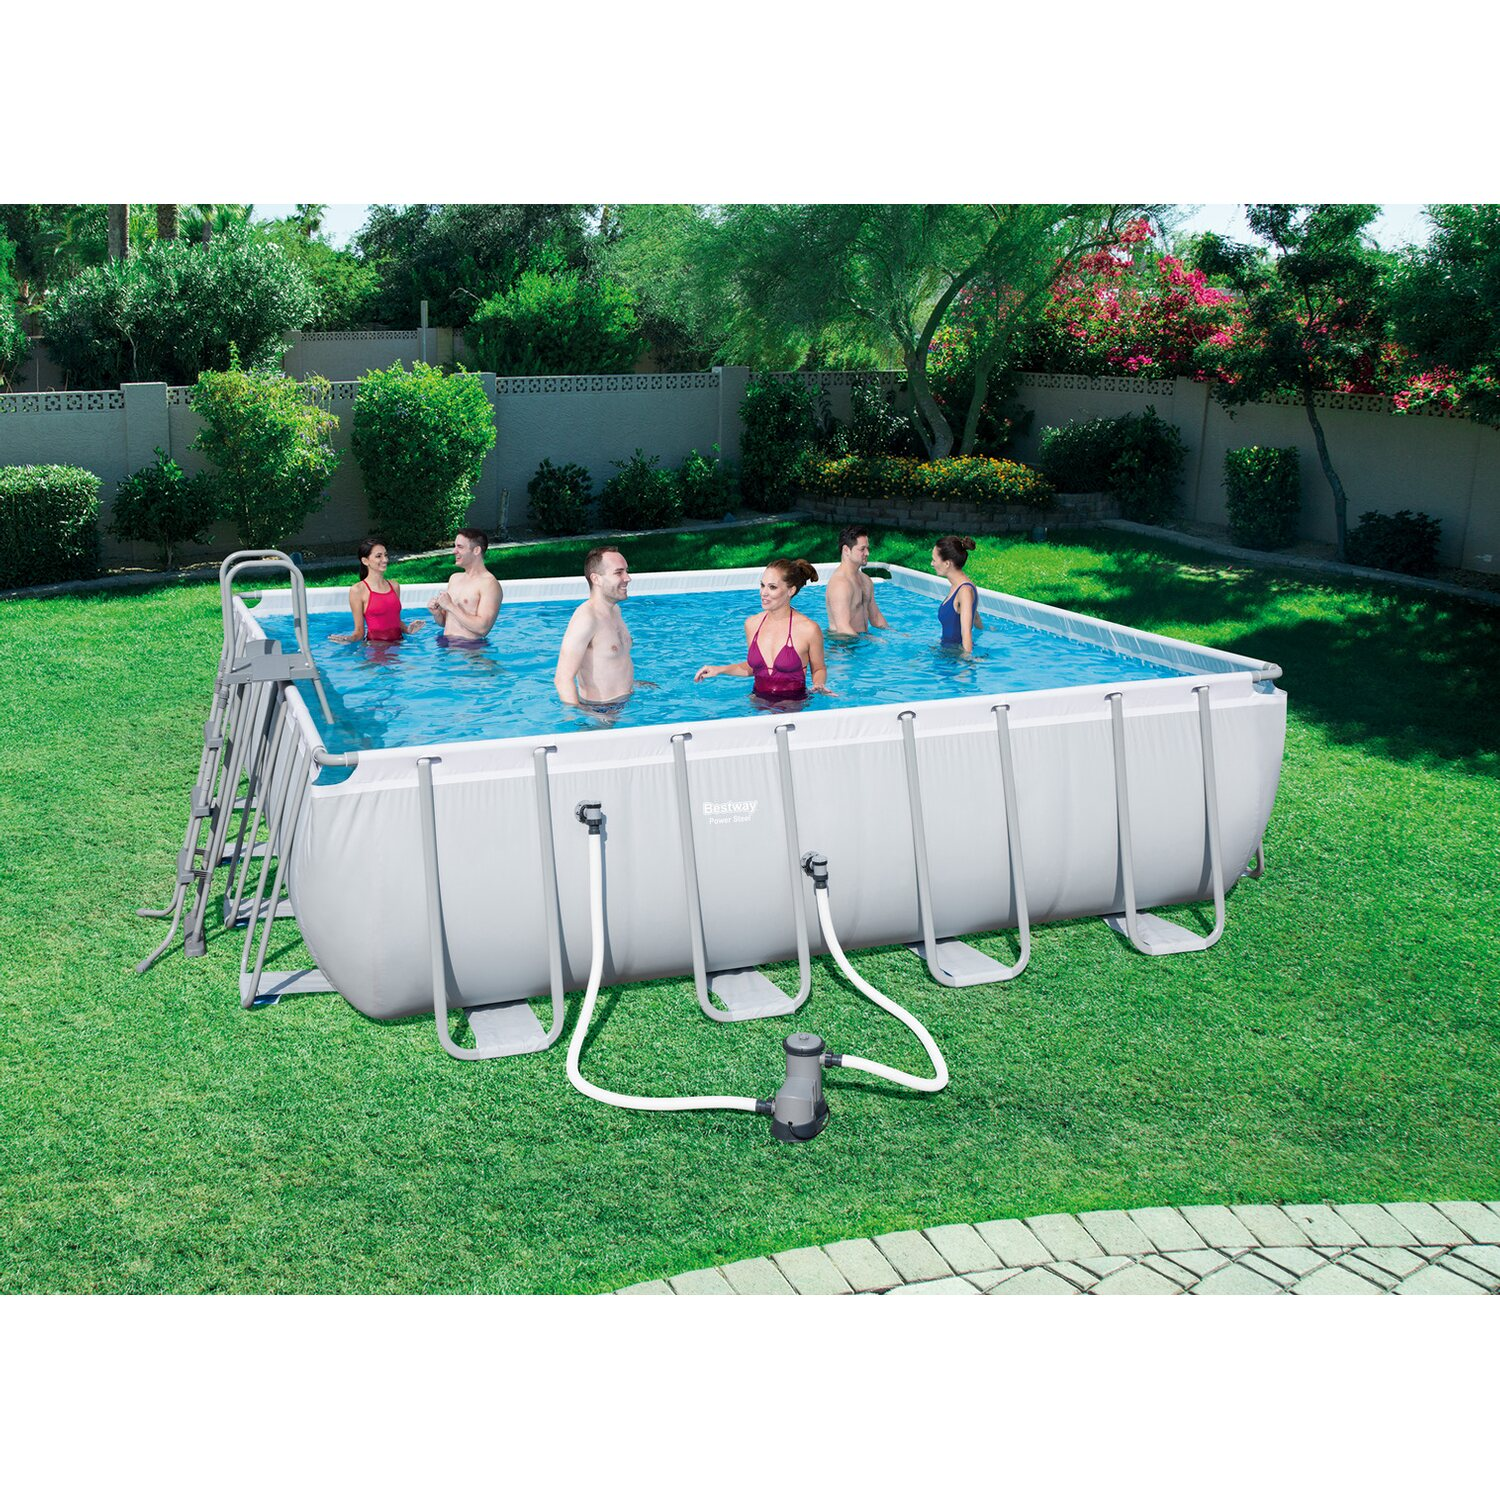 Bestway pool set power stahlrahmen 488 cm x 488 cm x 122 for Bestway pool bei obi